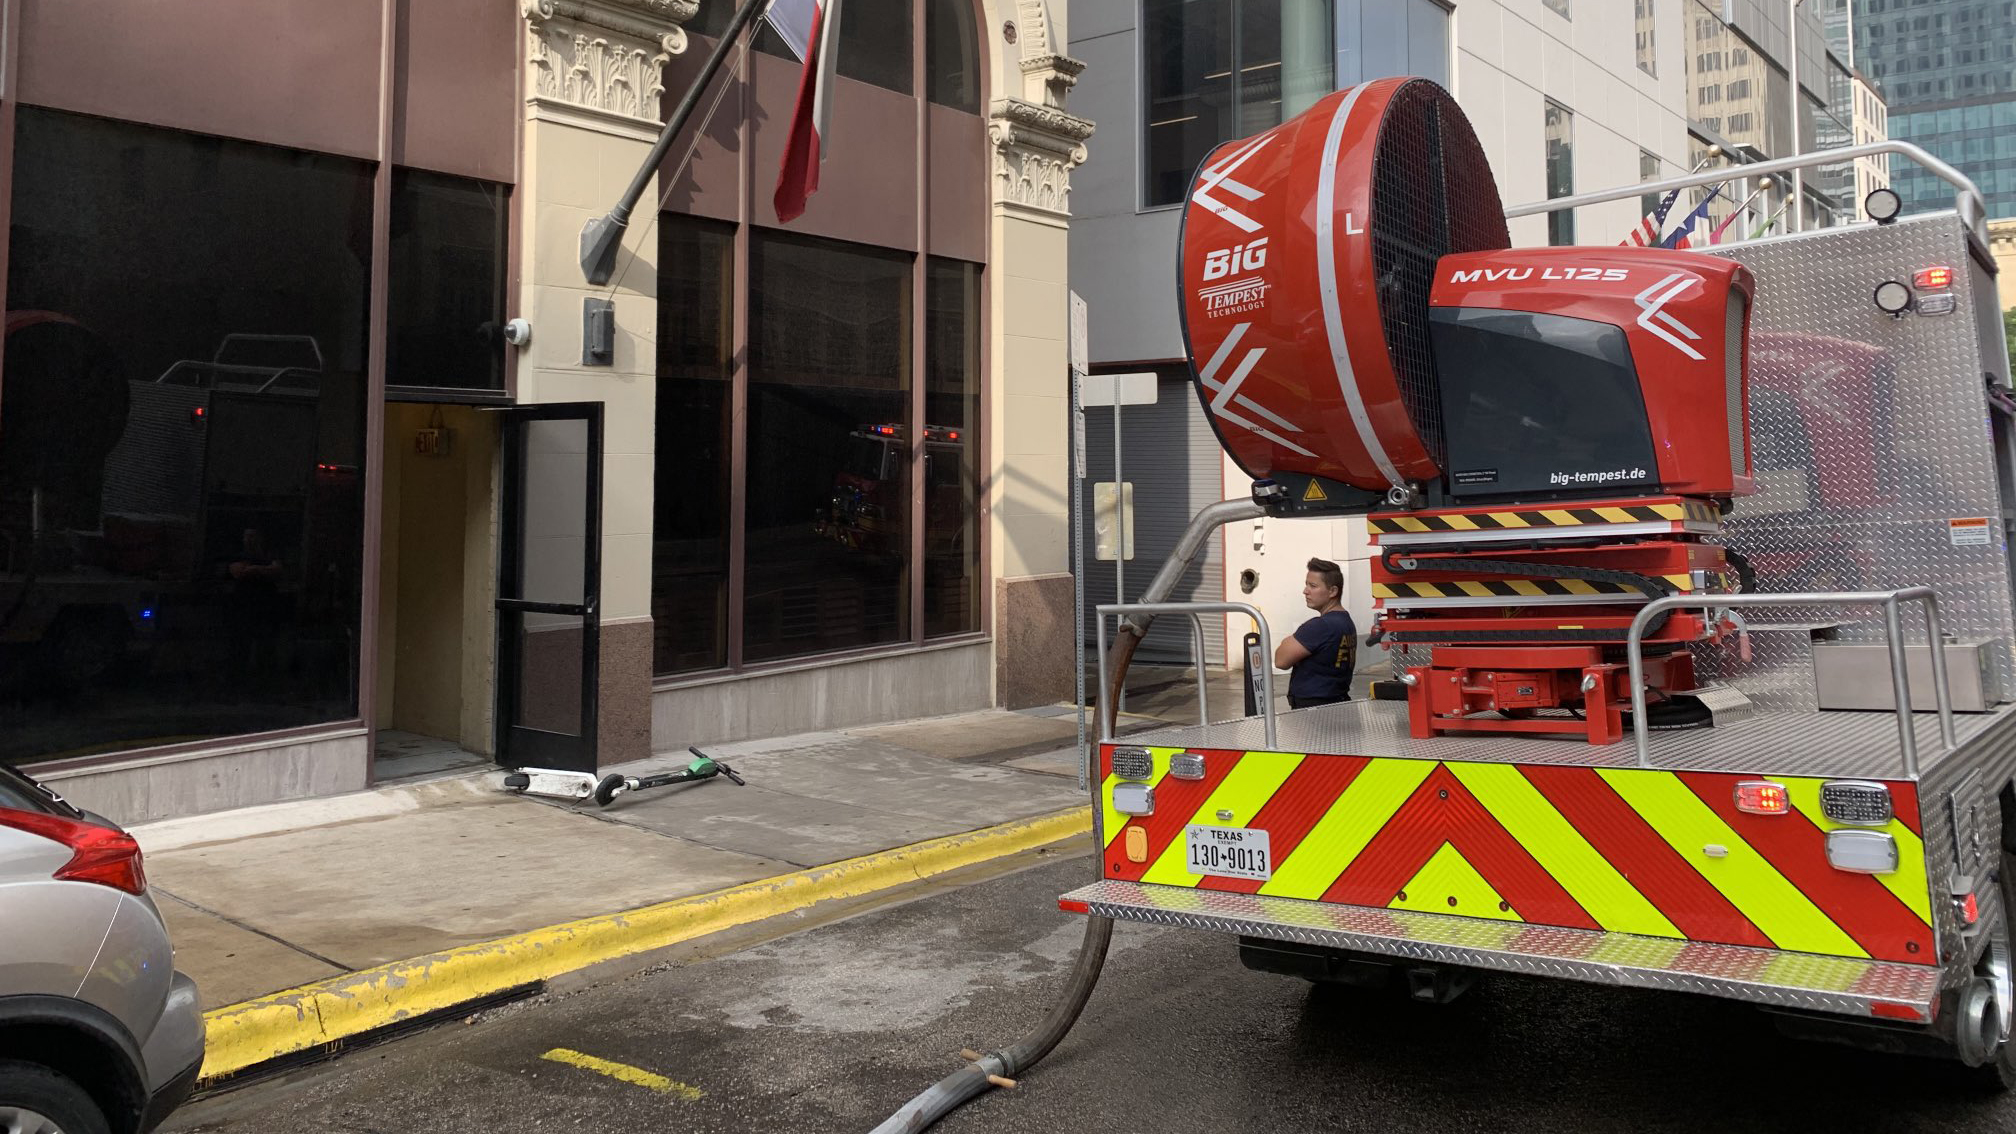 """The """"Smoke Buster"""" is a mobile ventilation unit that pulls smoke out of building in an effort to mitigate smoke damage, and AFD used it Monday morning for a fire that broke out at the Driskill hotel. (Photo courtesy of AFD)"""